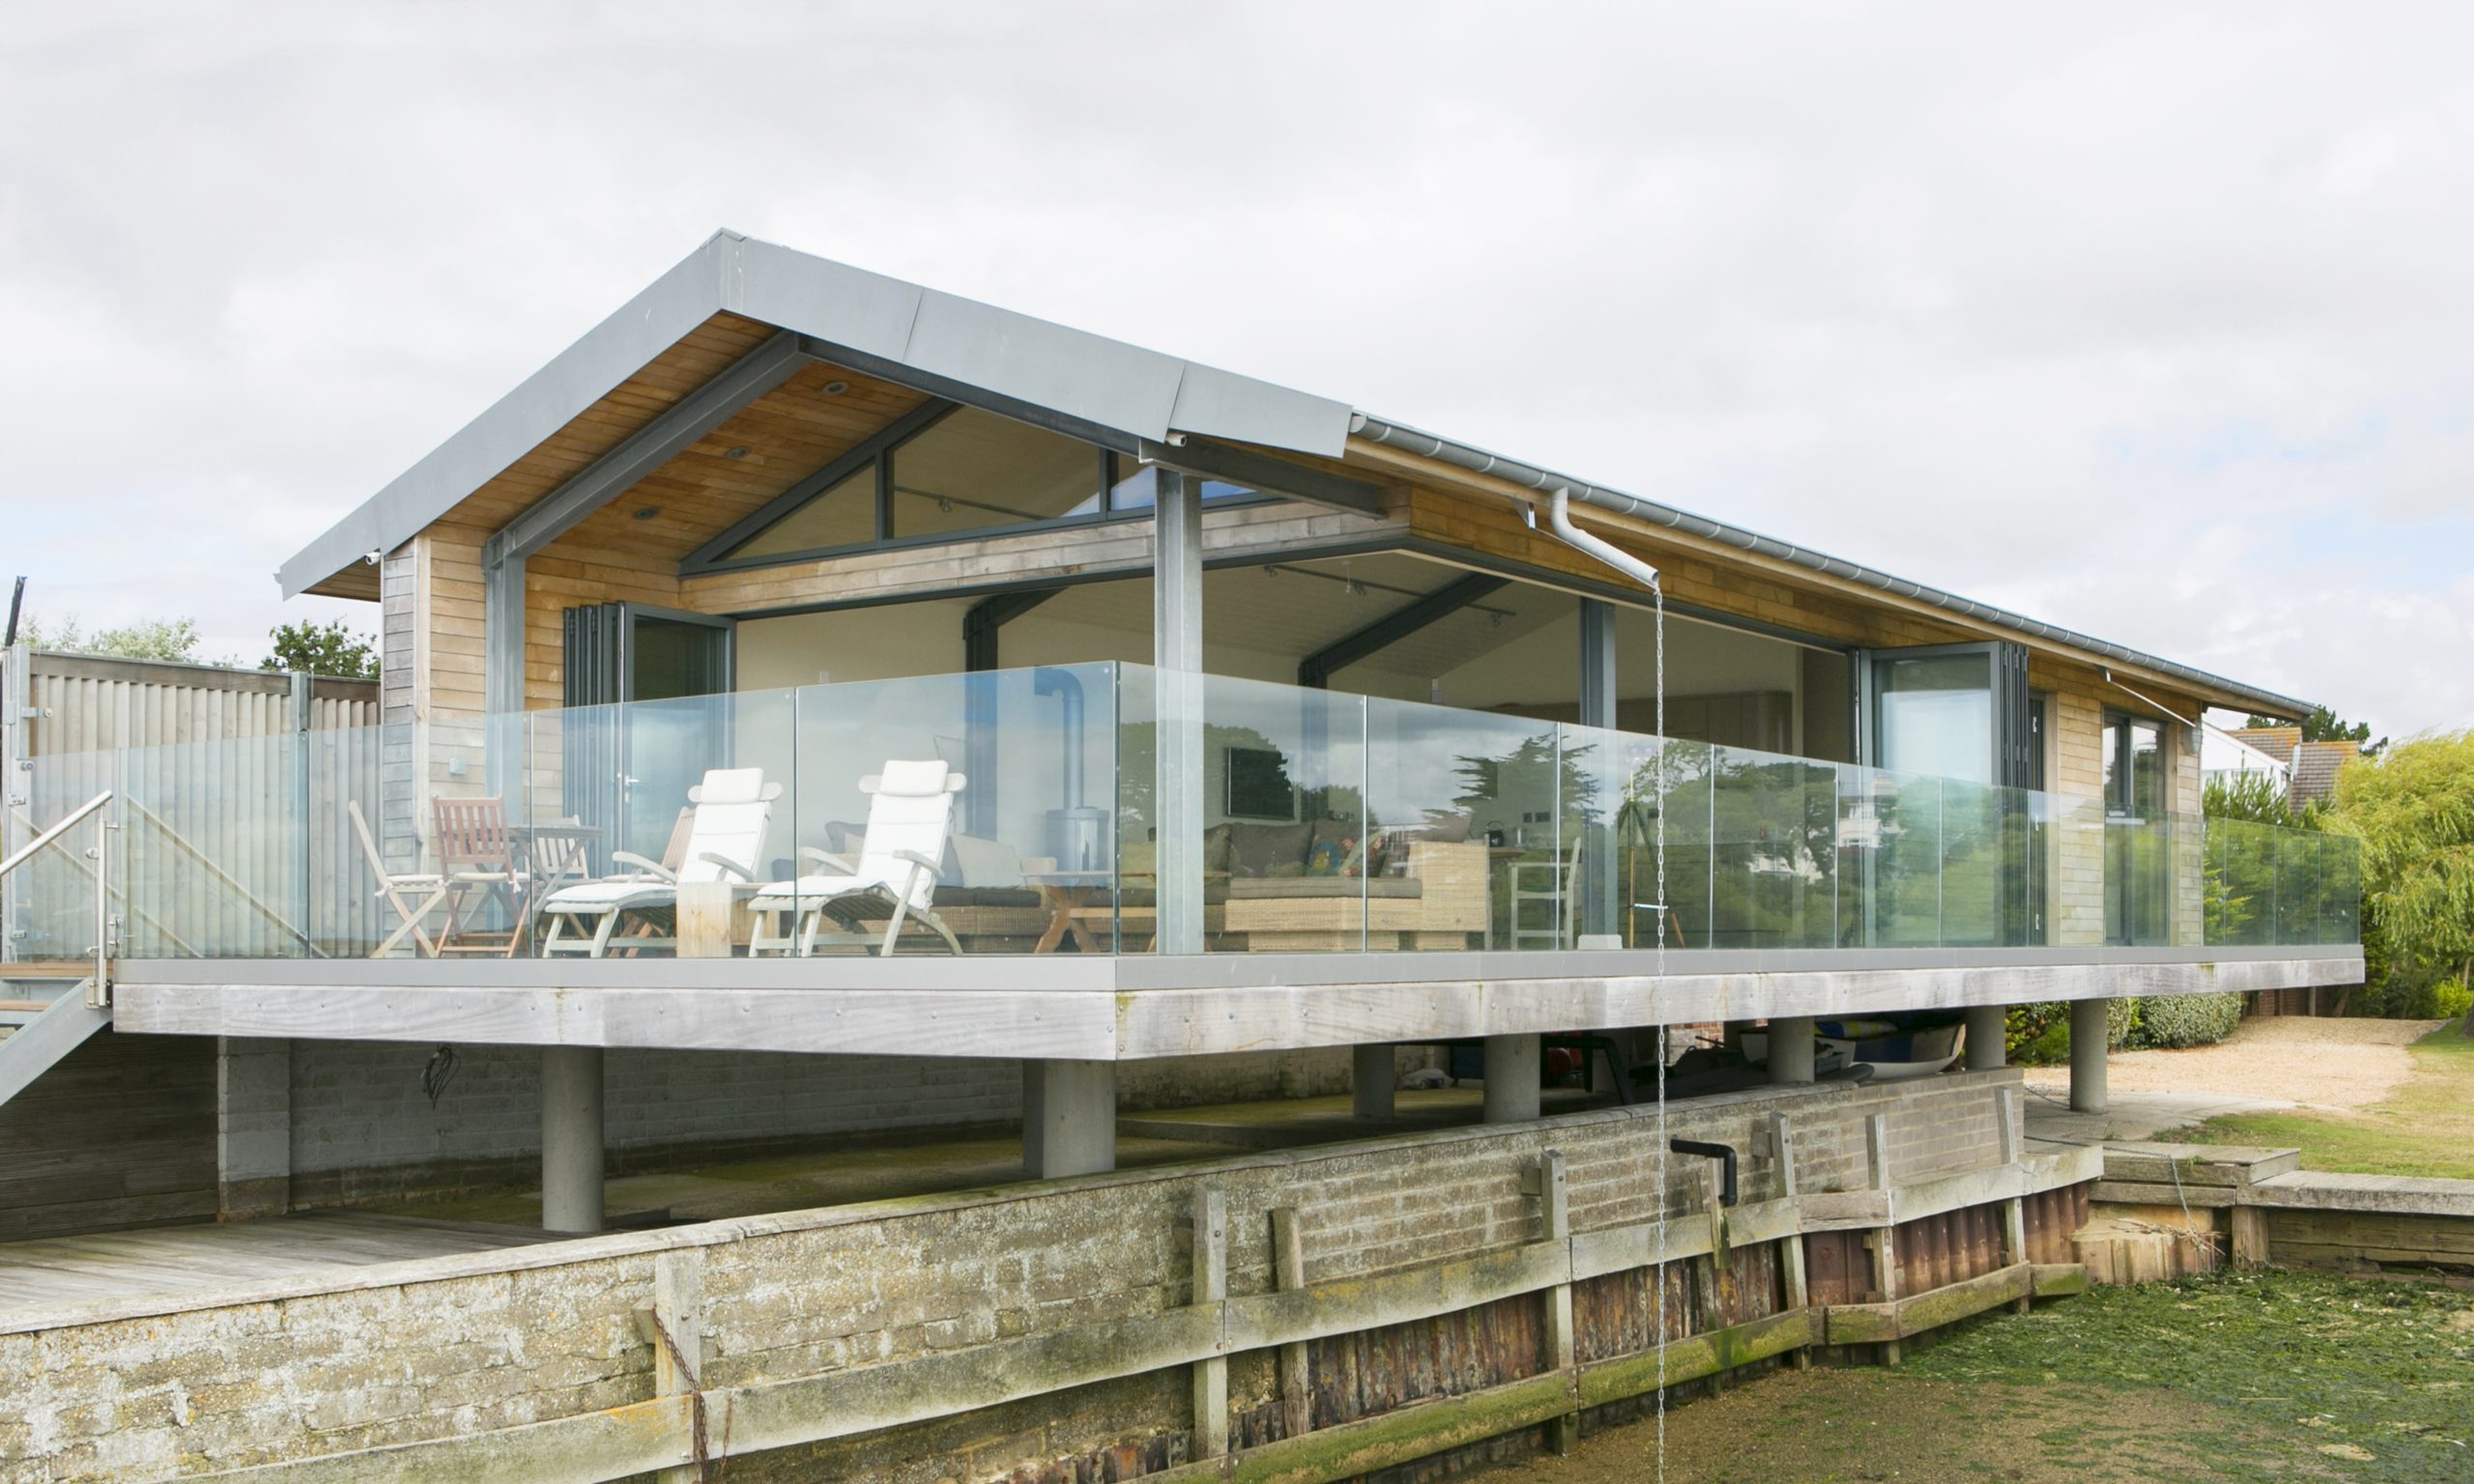 Fantastic architectural projects poole bournemouth - Architects poole dorset ...